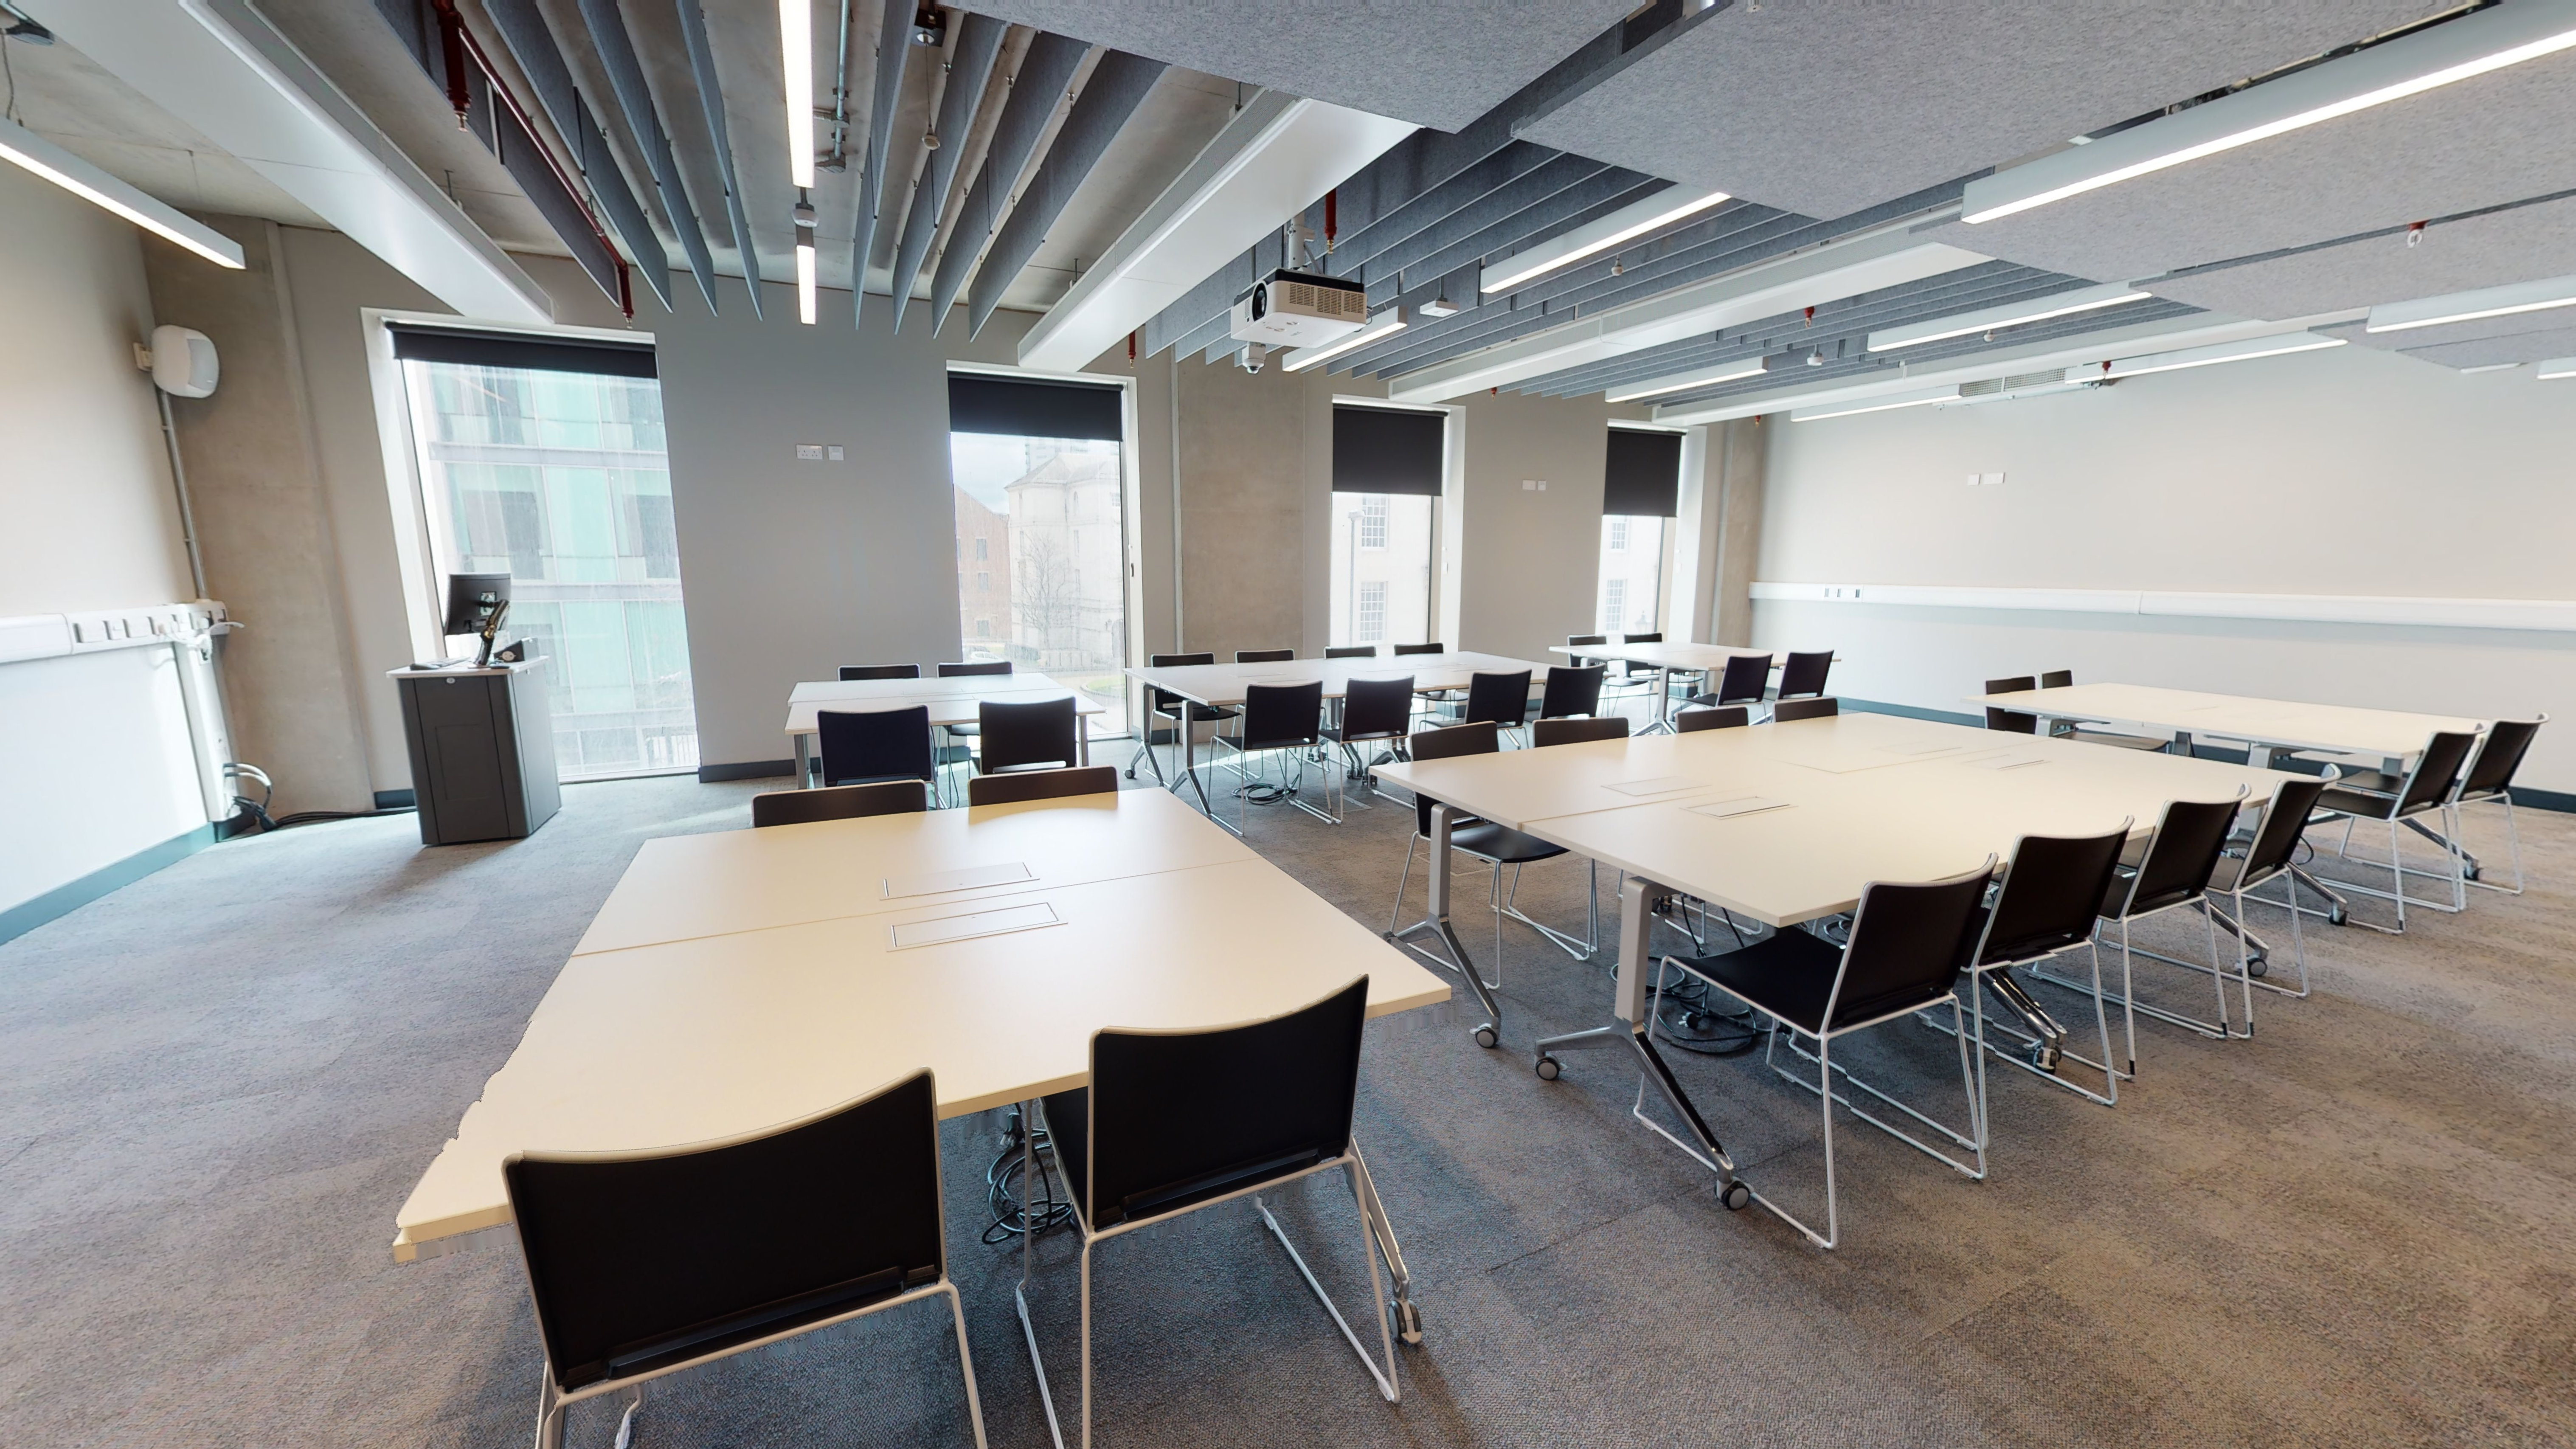 Modern industrial classroom space with tables and chairs